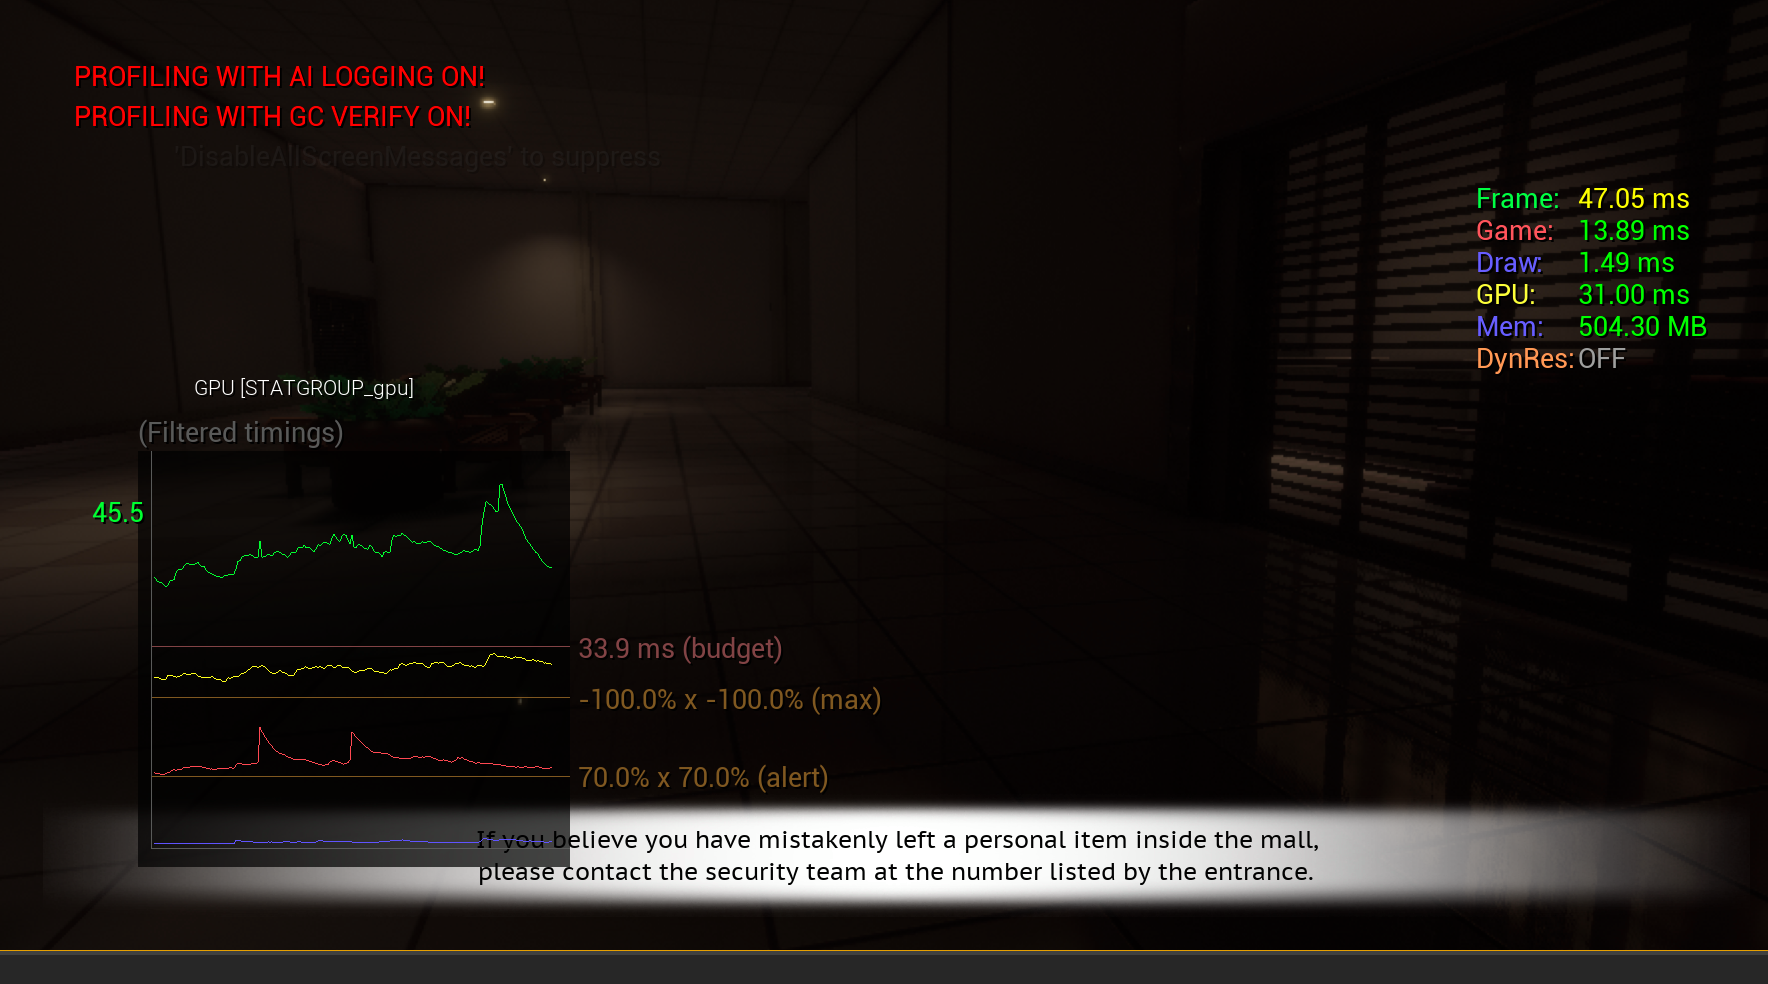 Screenshot of beginning hallway with graph and basic stats of how long it takes per frame to compute the GPU and Game threads, among other various stats